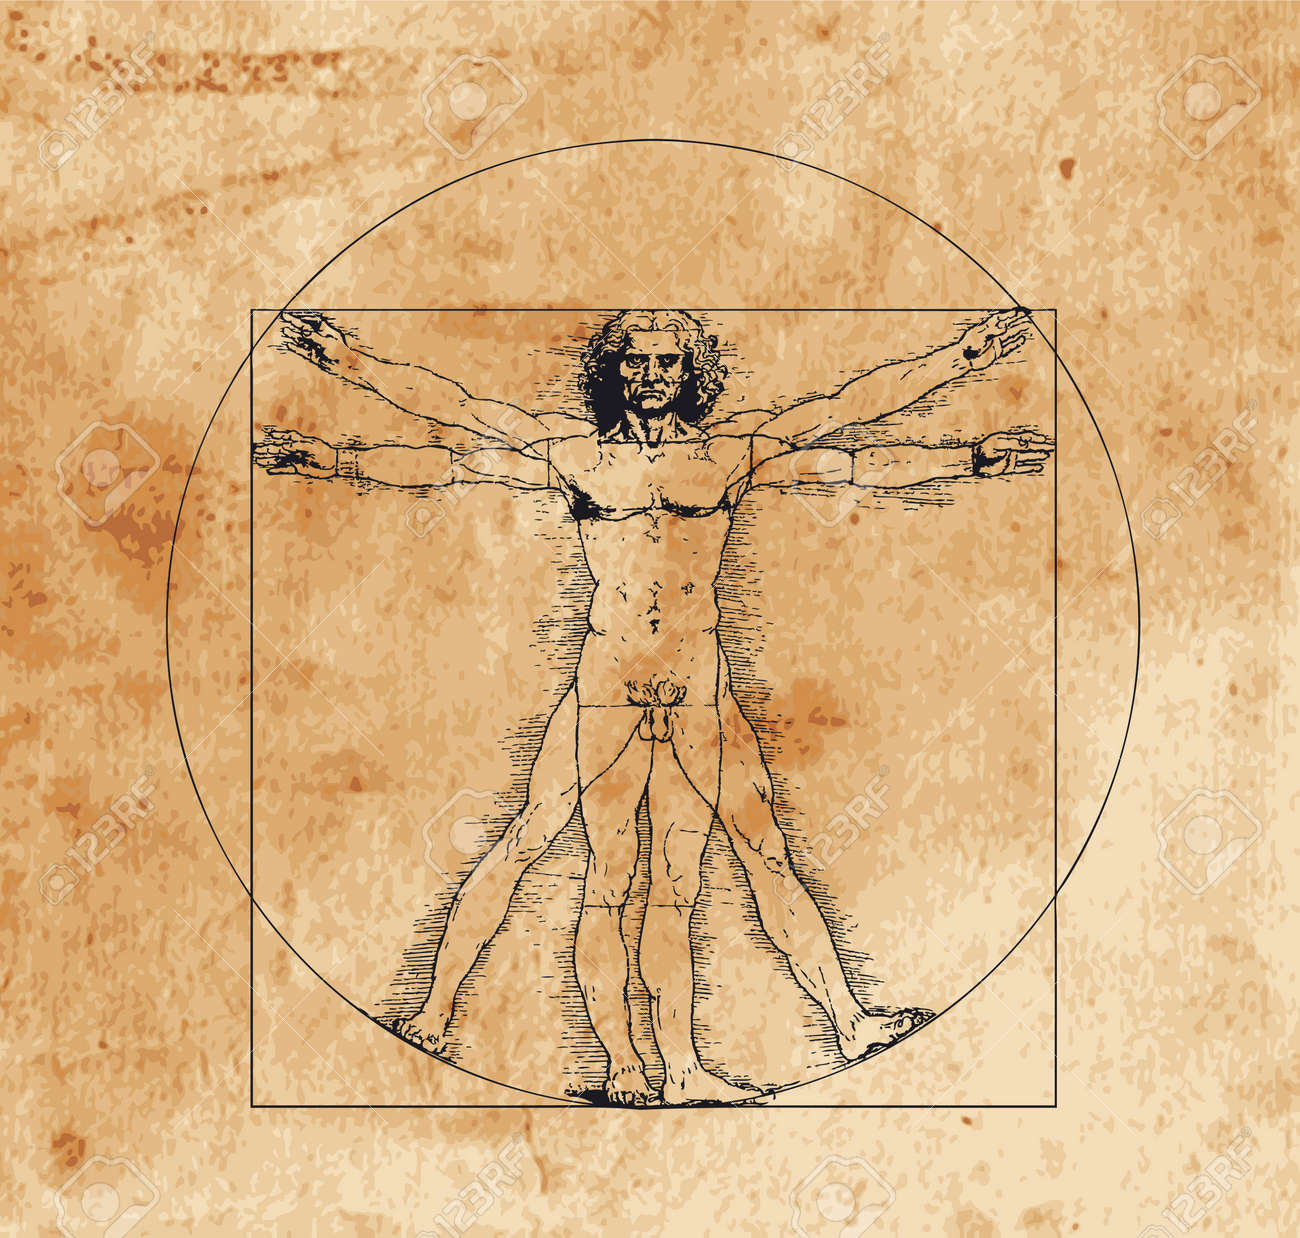 A highly stylized drawing of vitruvian man with crosshatching and sepia tones - 3958227